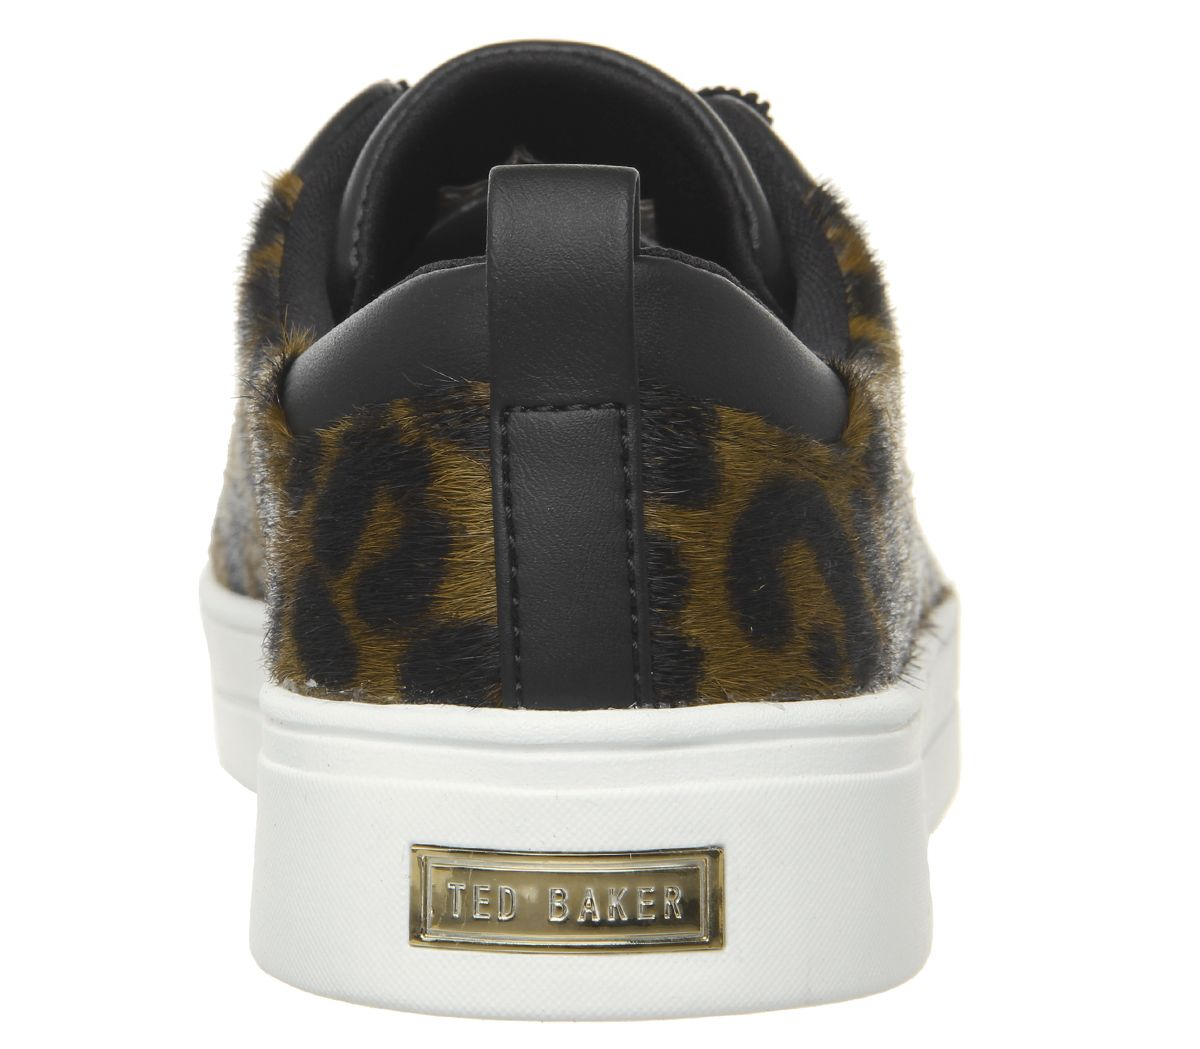 69daeaf270257 Womens-Ted-Baker-Elzseel-Sneakers-Leopard-Flats thumbnail 11